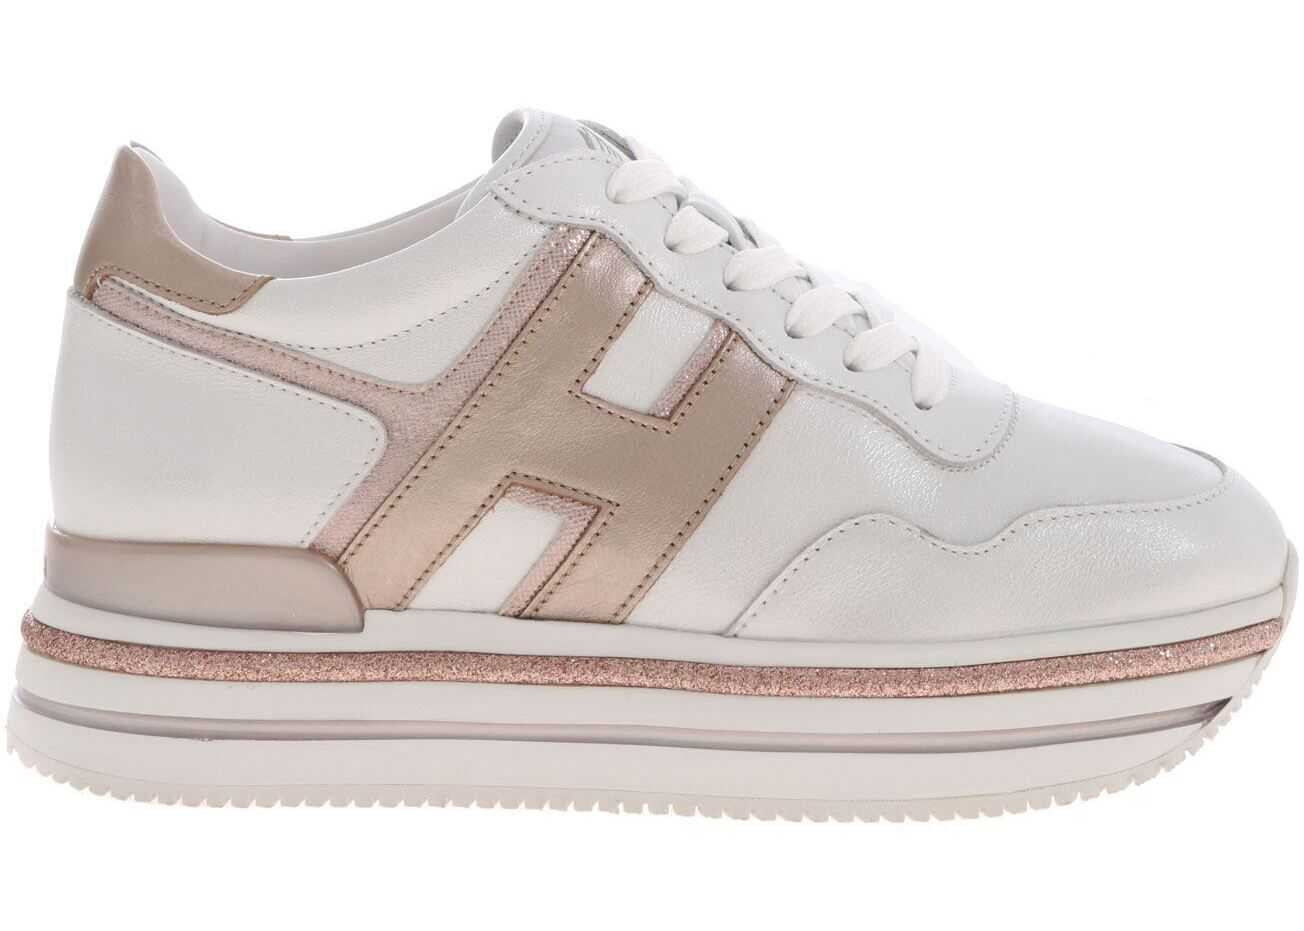 Hogan H468 Sneakers In White And Pink White